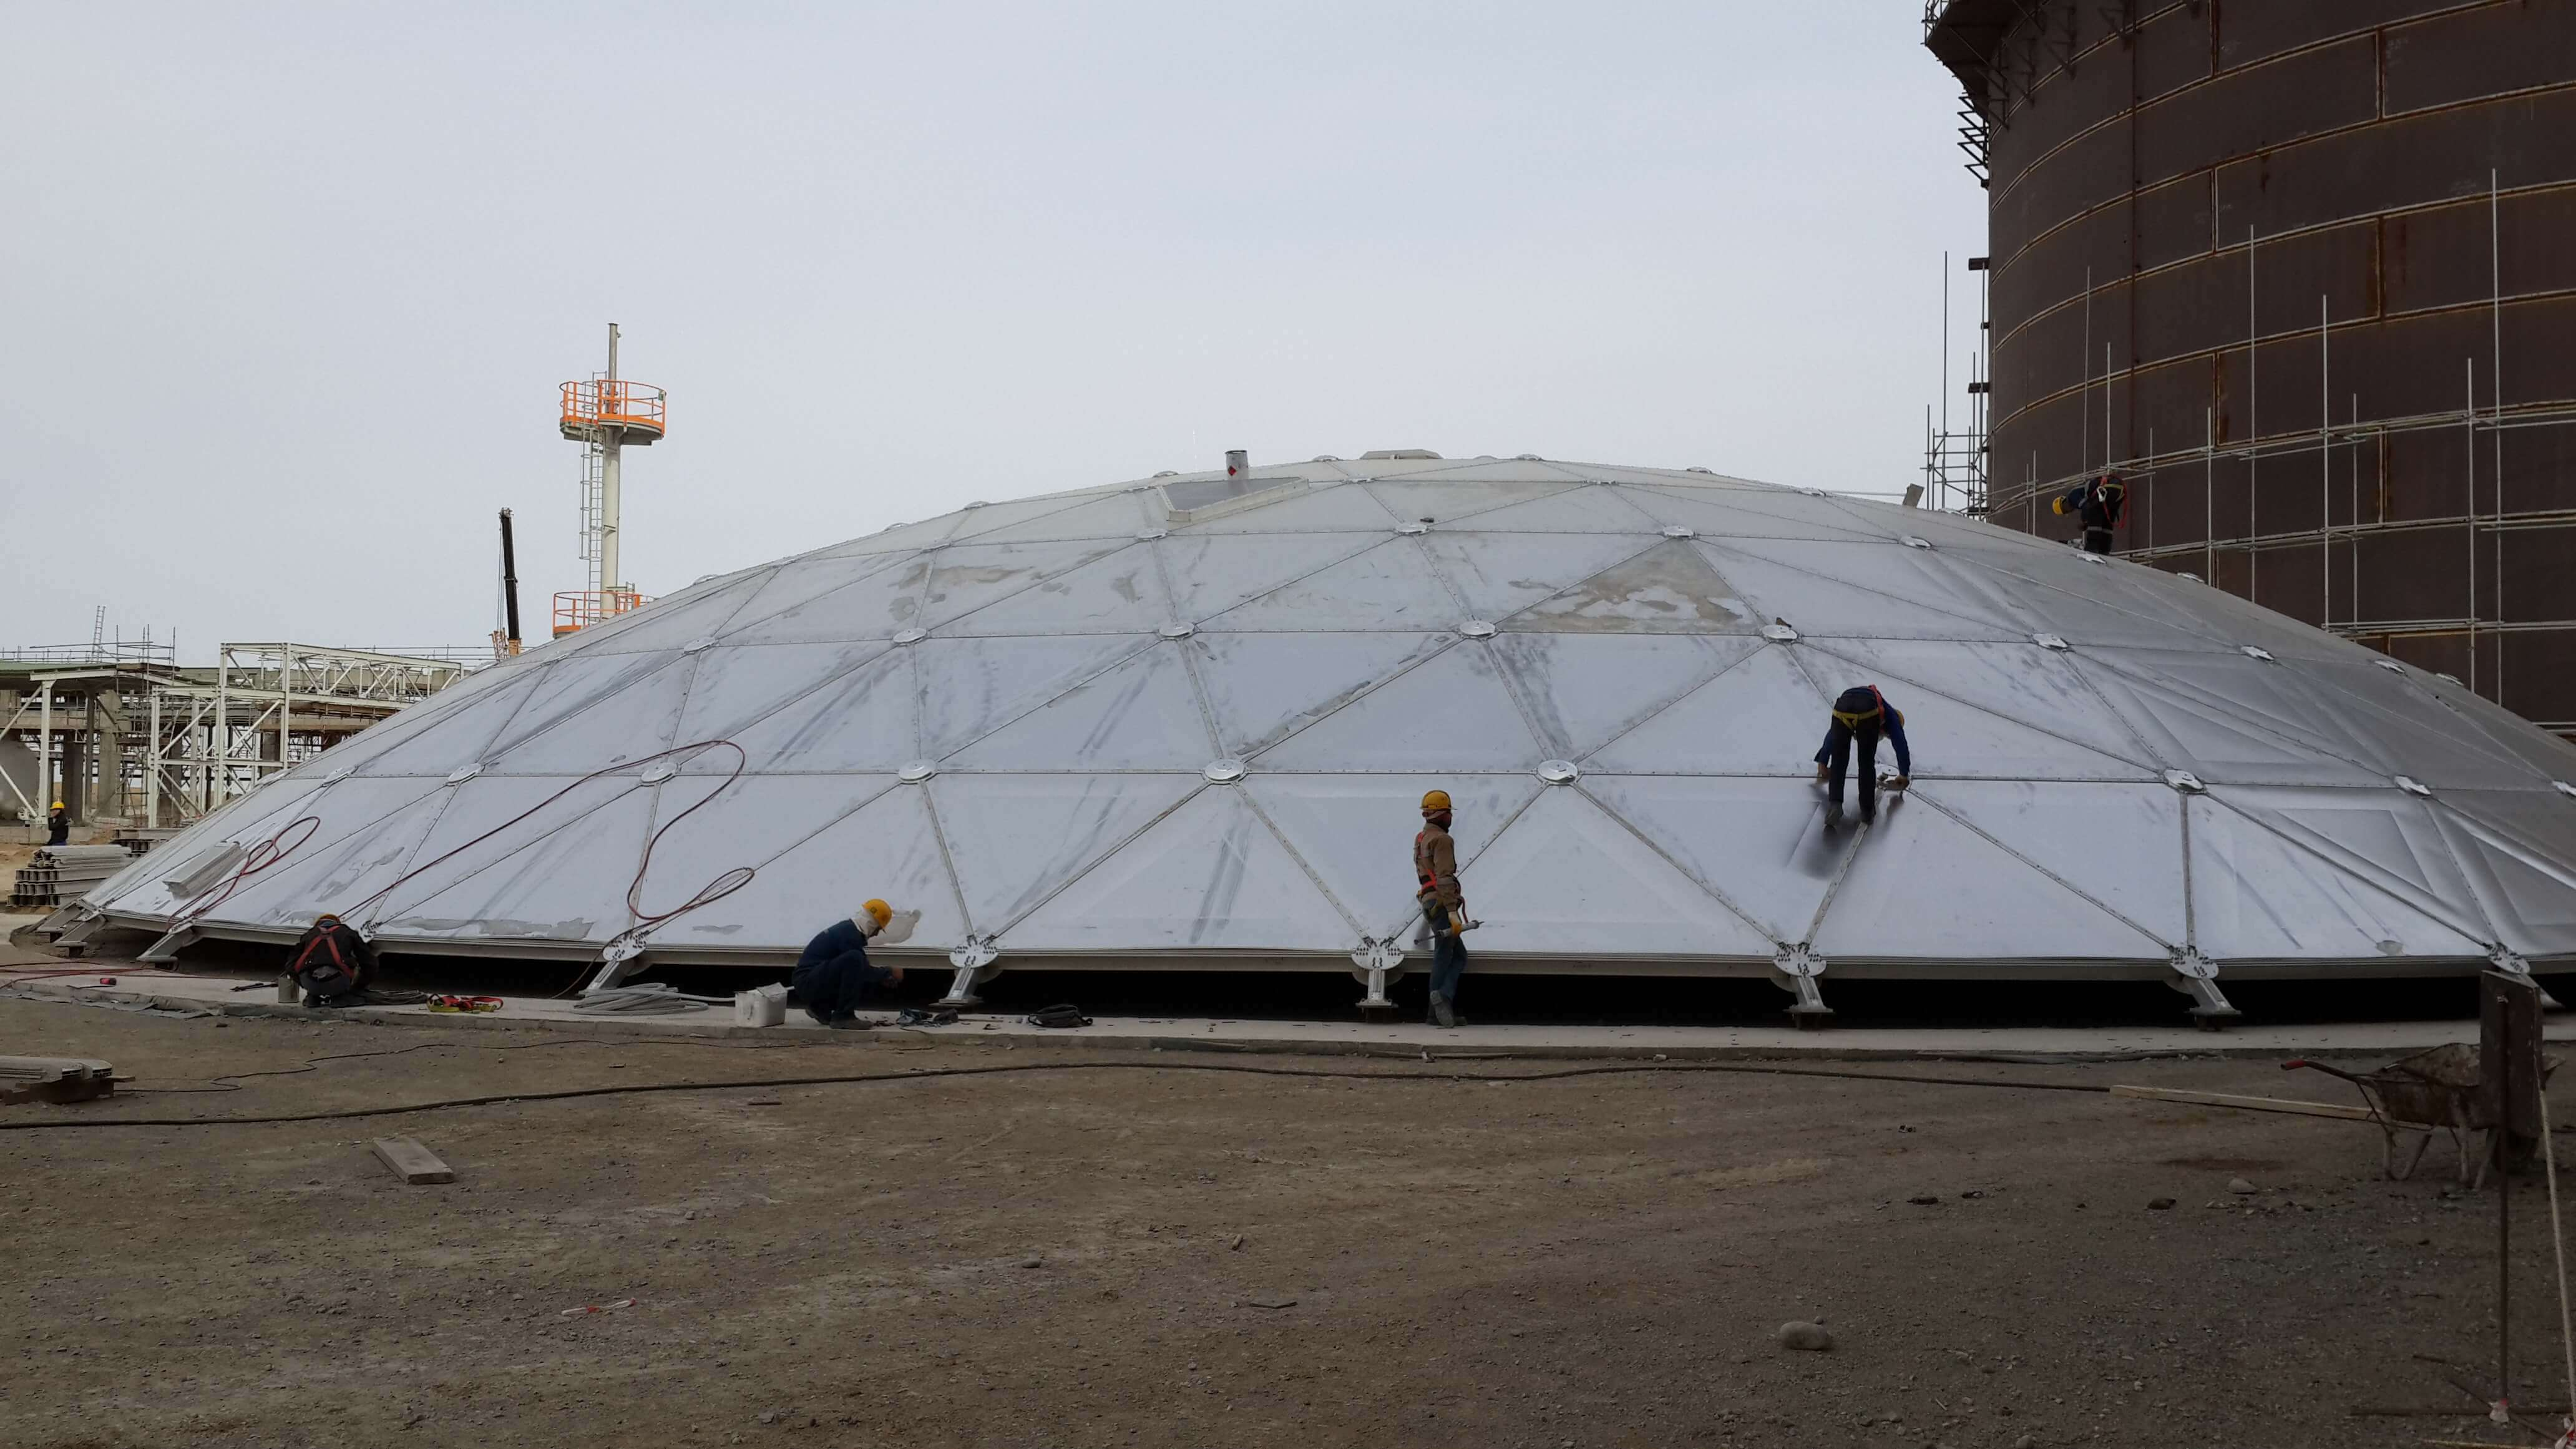 aluminium-geodesic-dome-roof-9